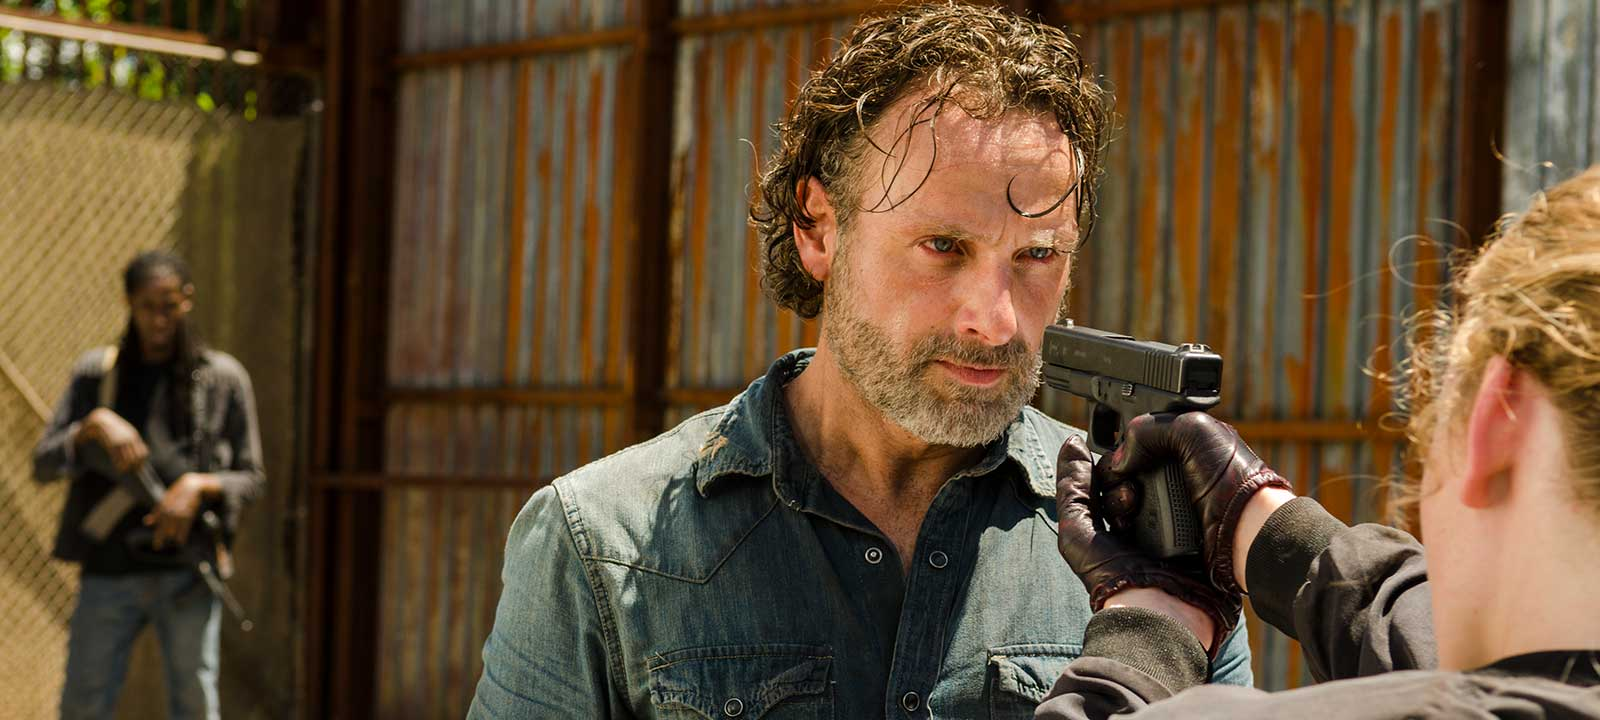 the-walking-dead-episode-708-rick-lincoln-800×600-interview